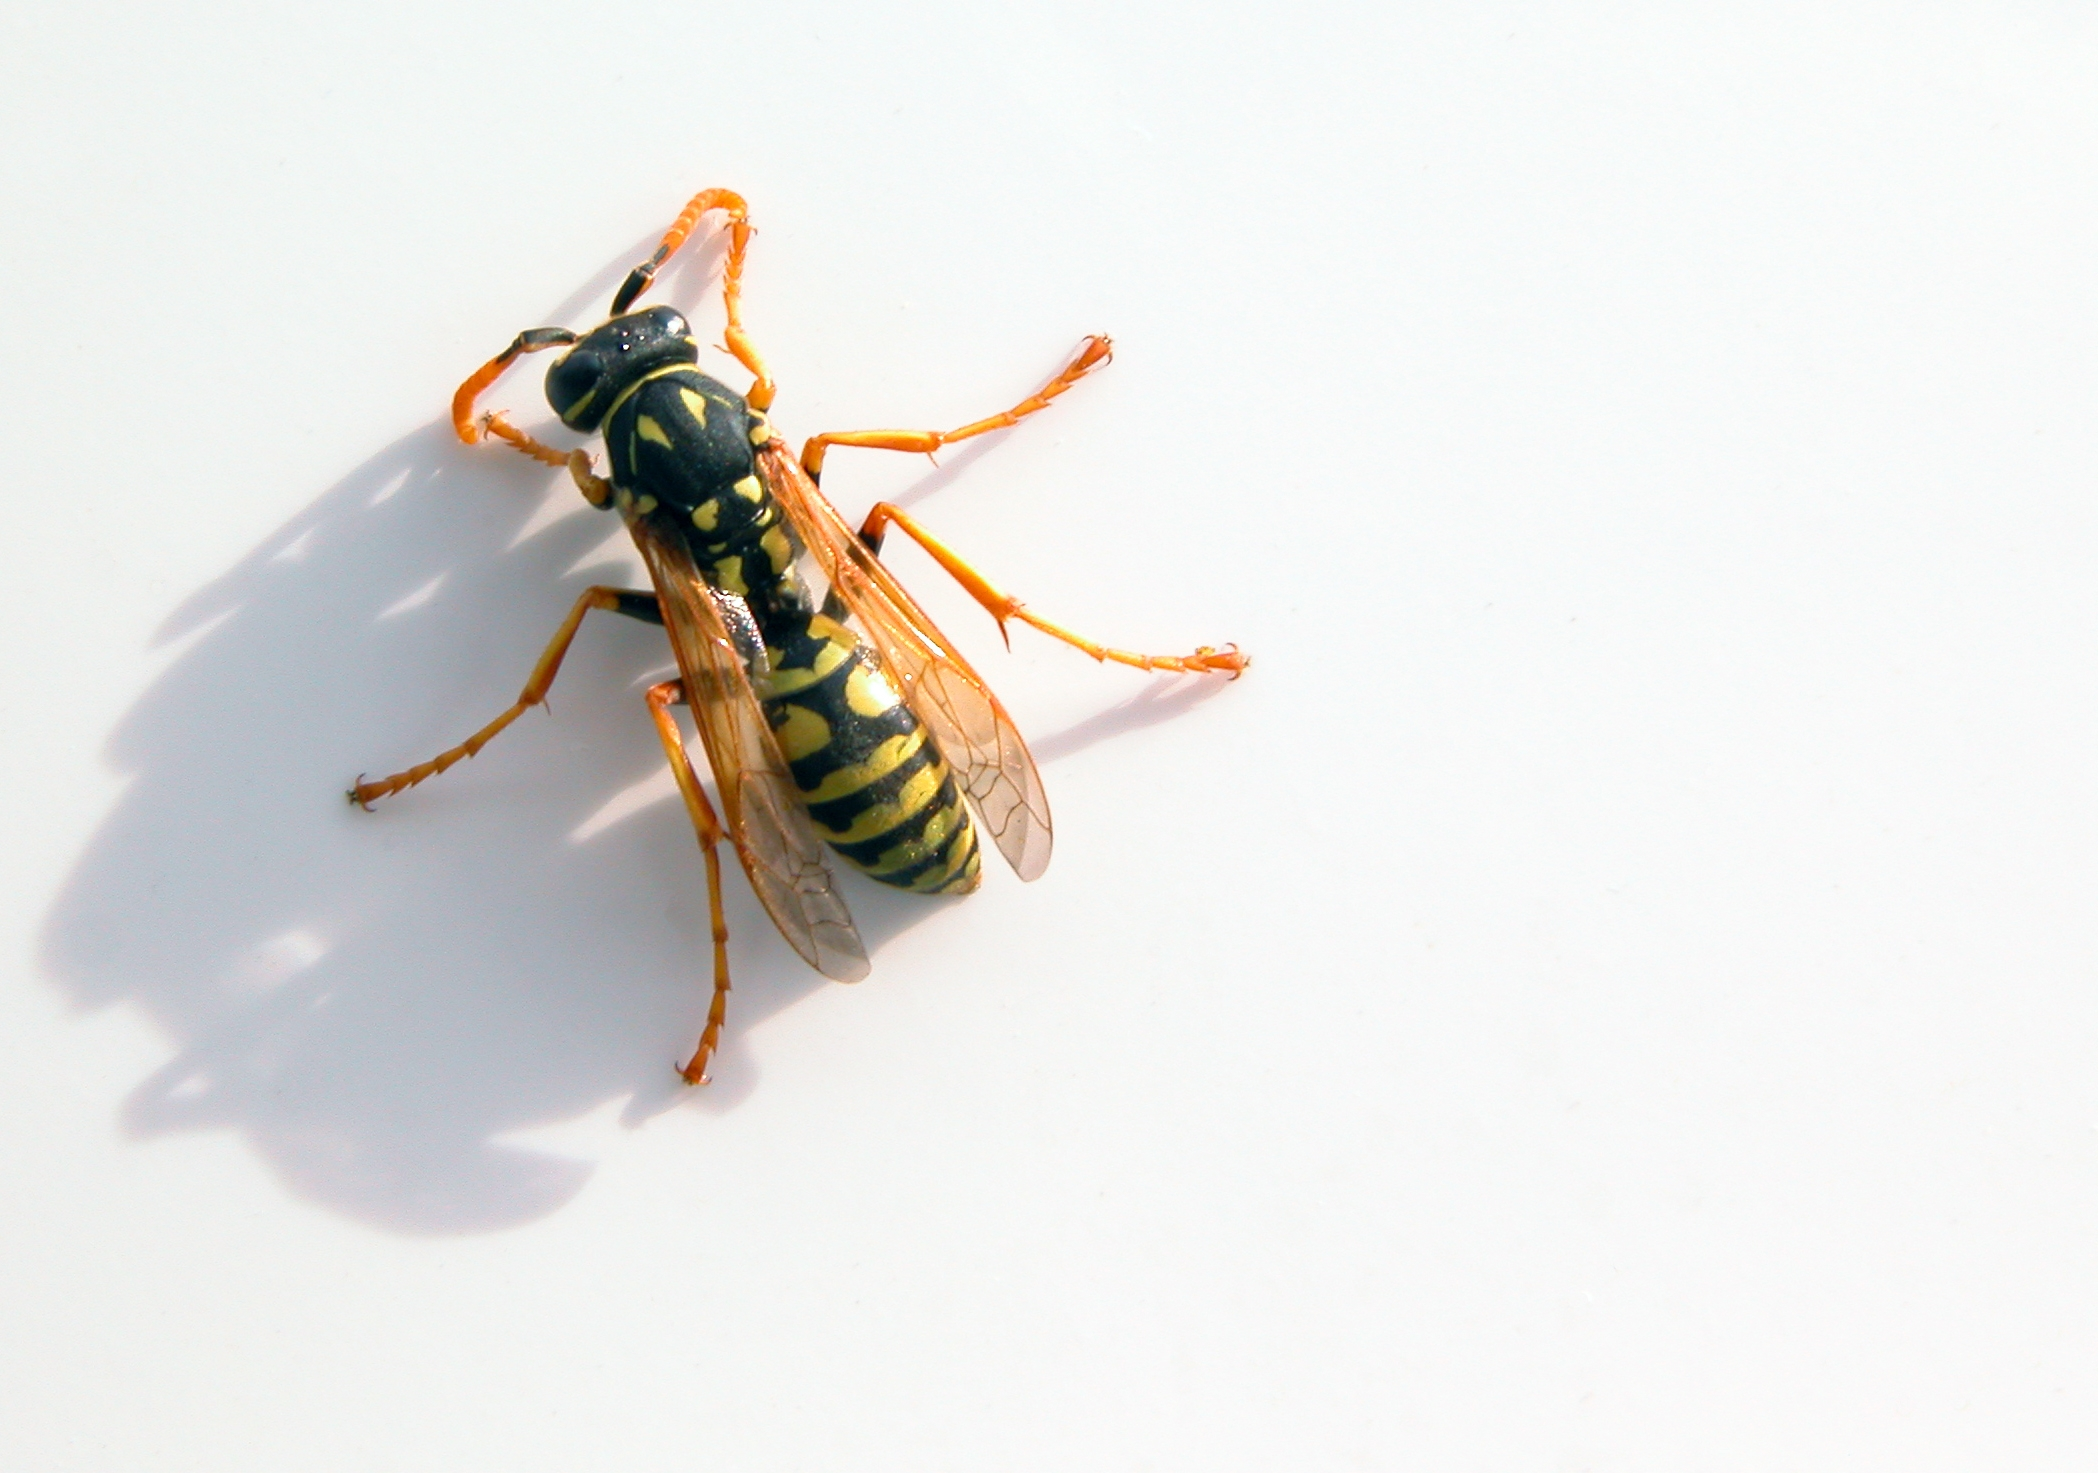 insects wasp 2098x1473 wallpapers High Quality Wallpapers